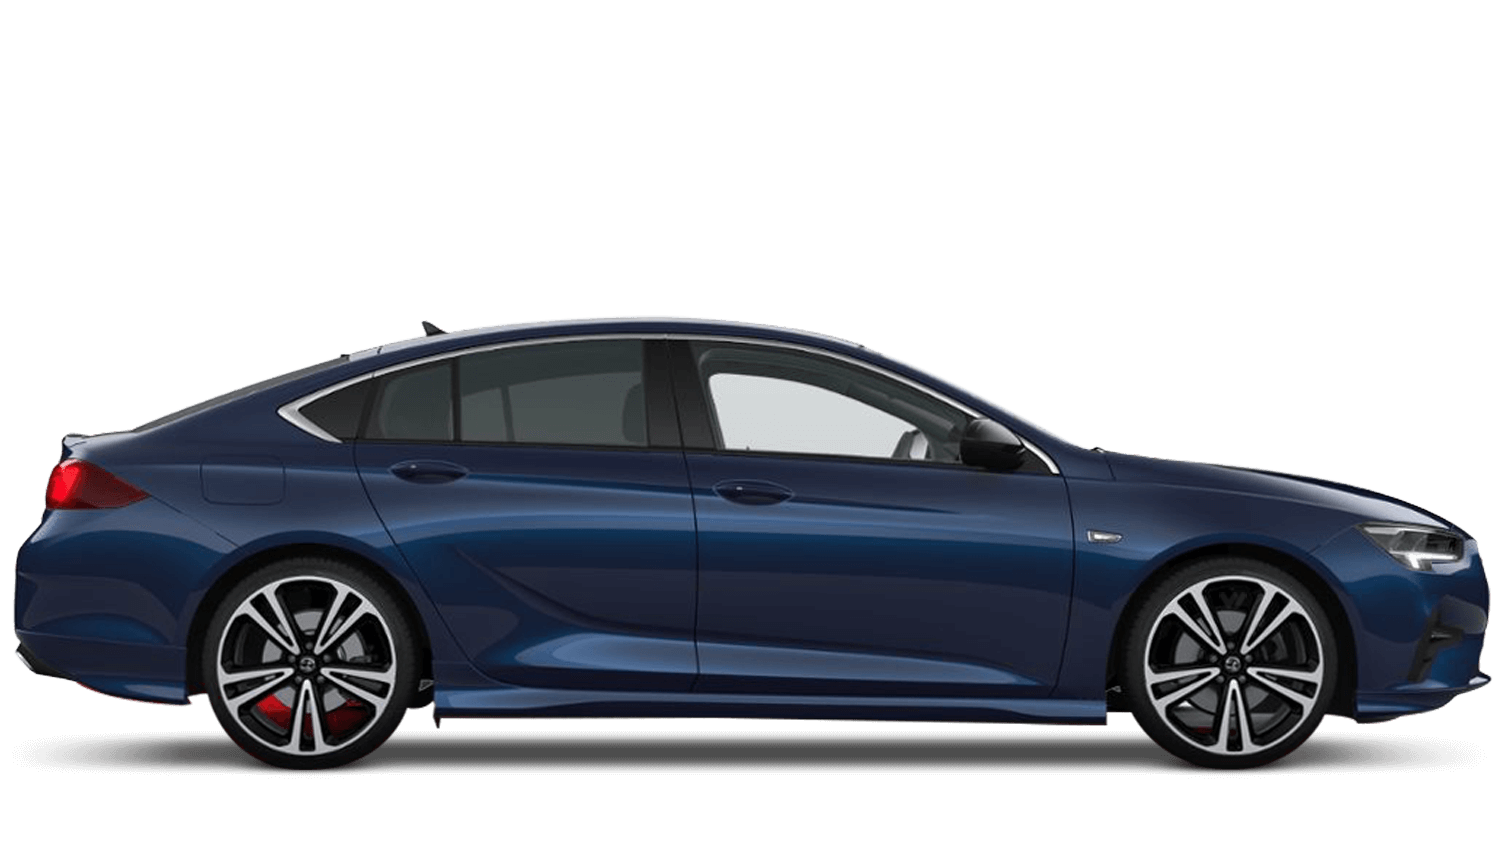 Navy Blue (Metallic) New Vauxhall Insignia